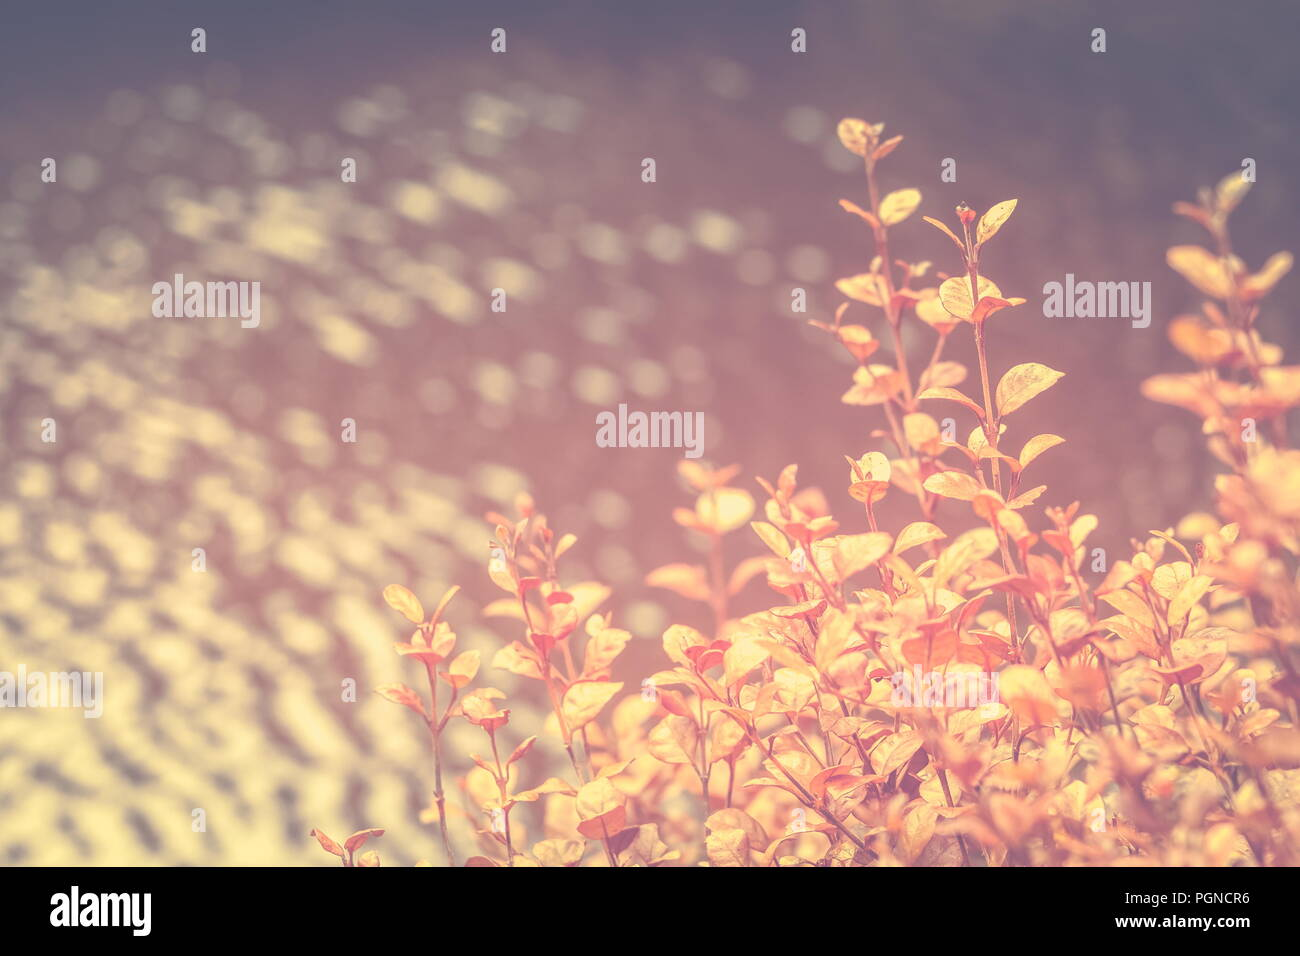 Background nature image with copy space in muted orange tones - Stock Image